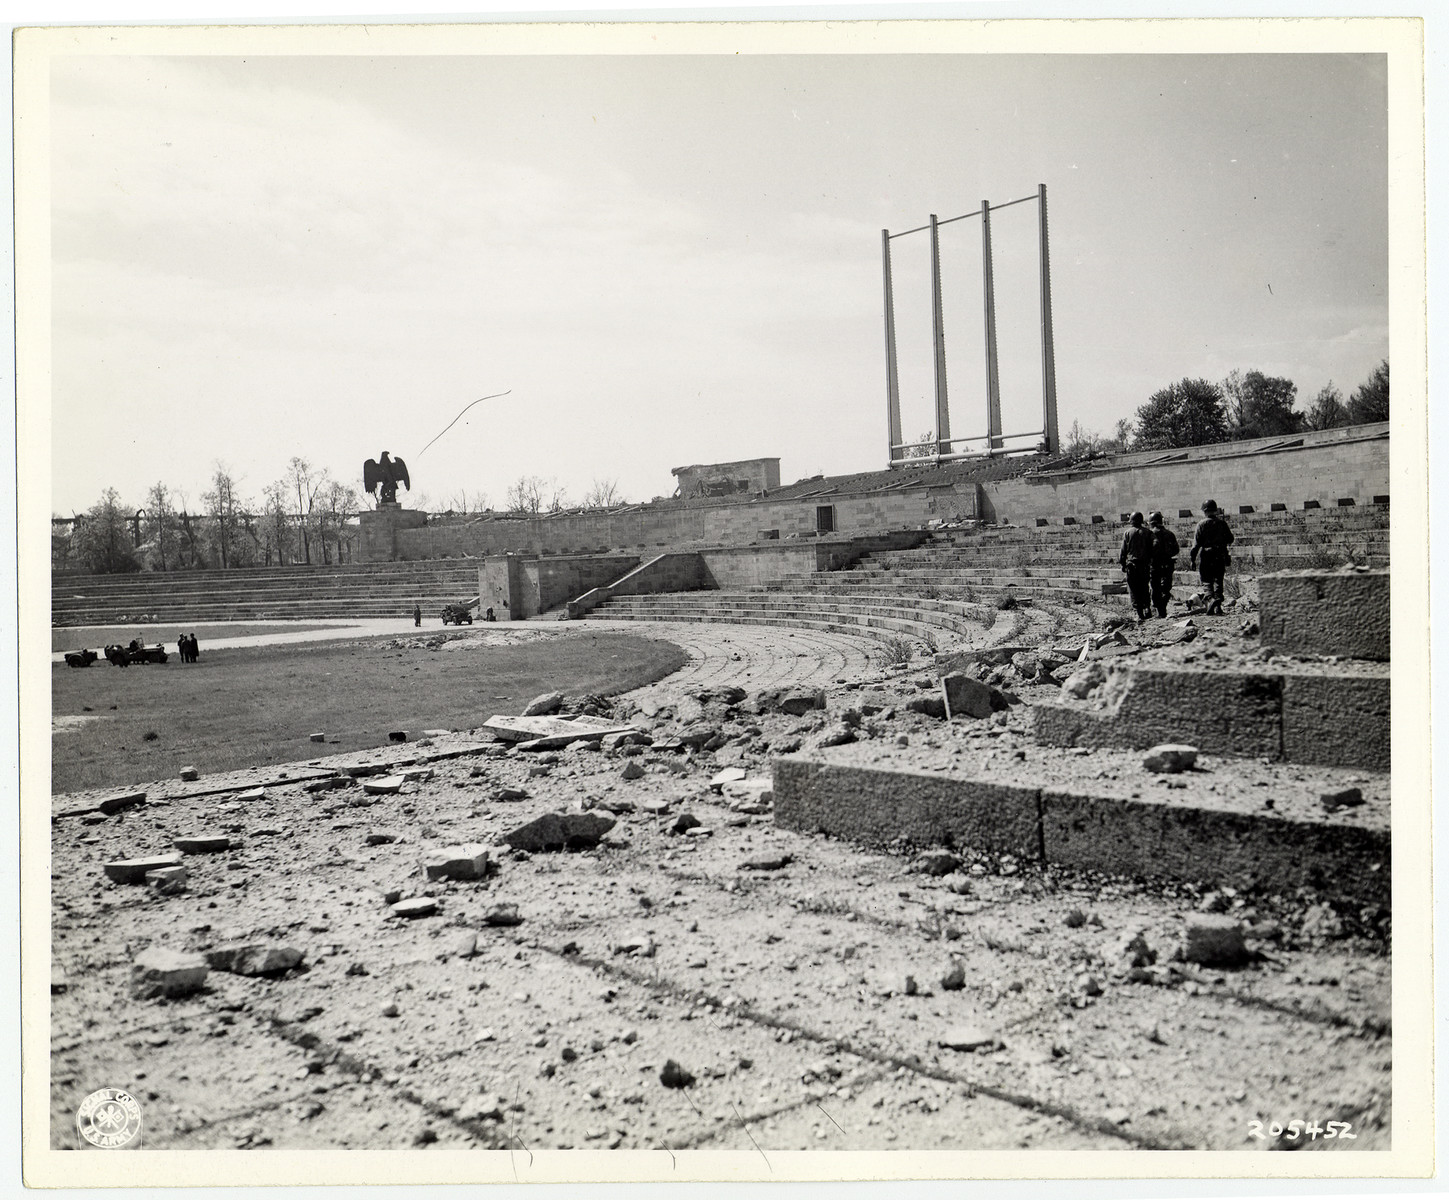 Soldiers walk among the rubble of Berlin's Olympic stadium. The Nazi eagle is still standing.